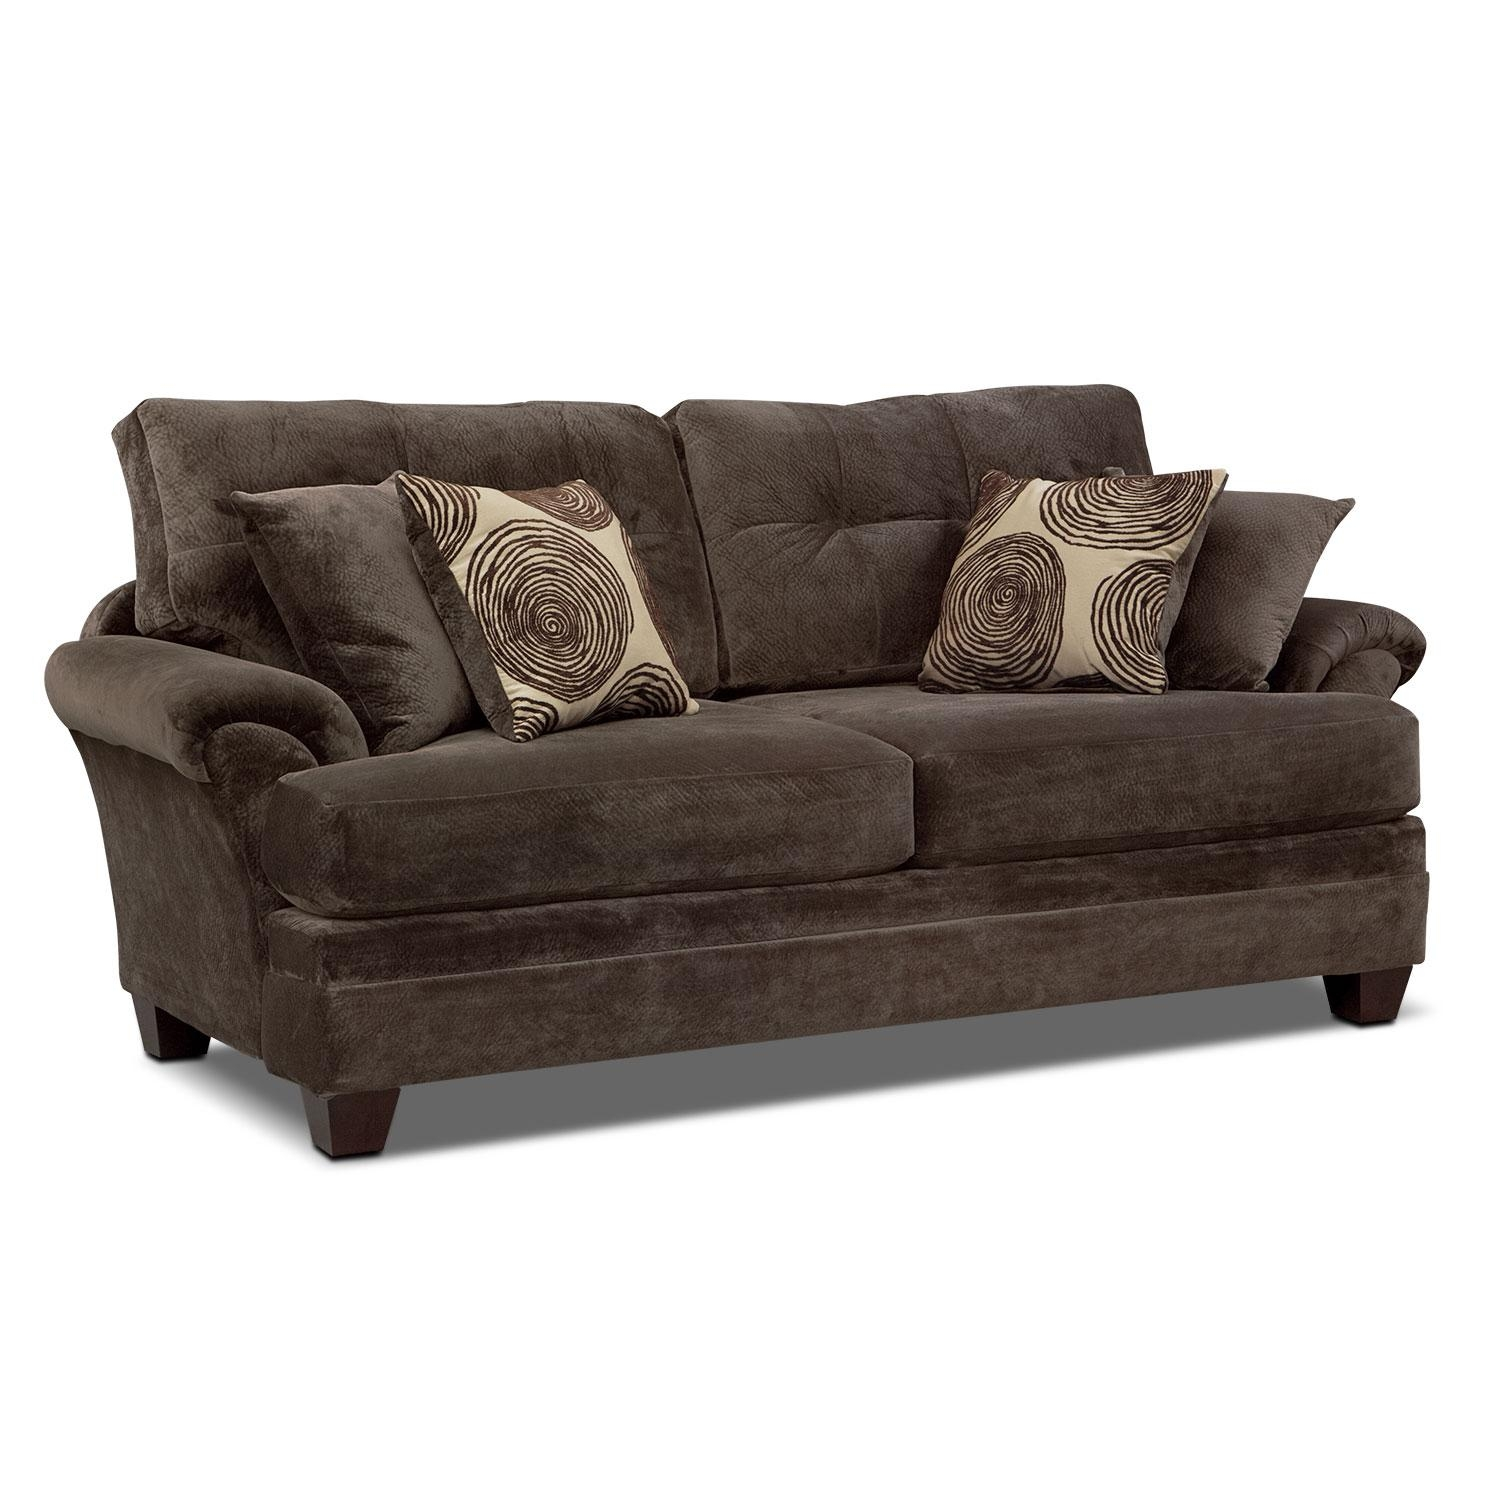 Cordelle Sofa And Swivel Chair Set – Chocolate | Value City Furniture Intended For Sofa With Swivel Chair (View 6 of 20)